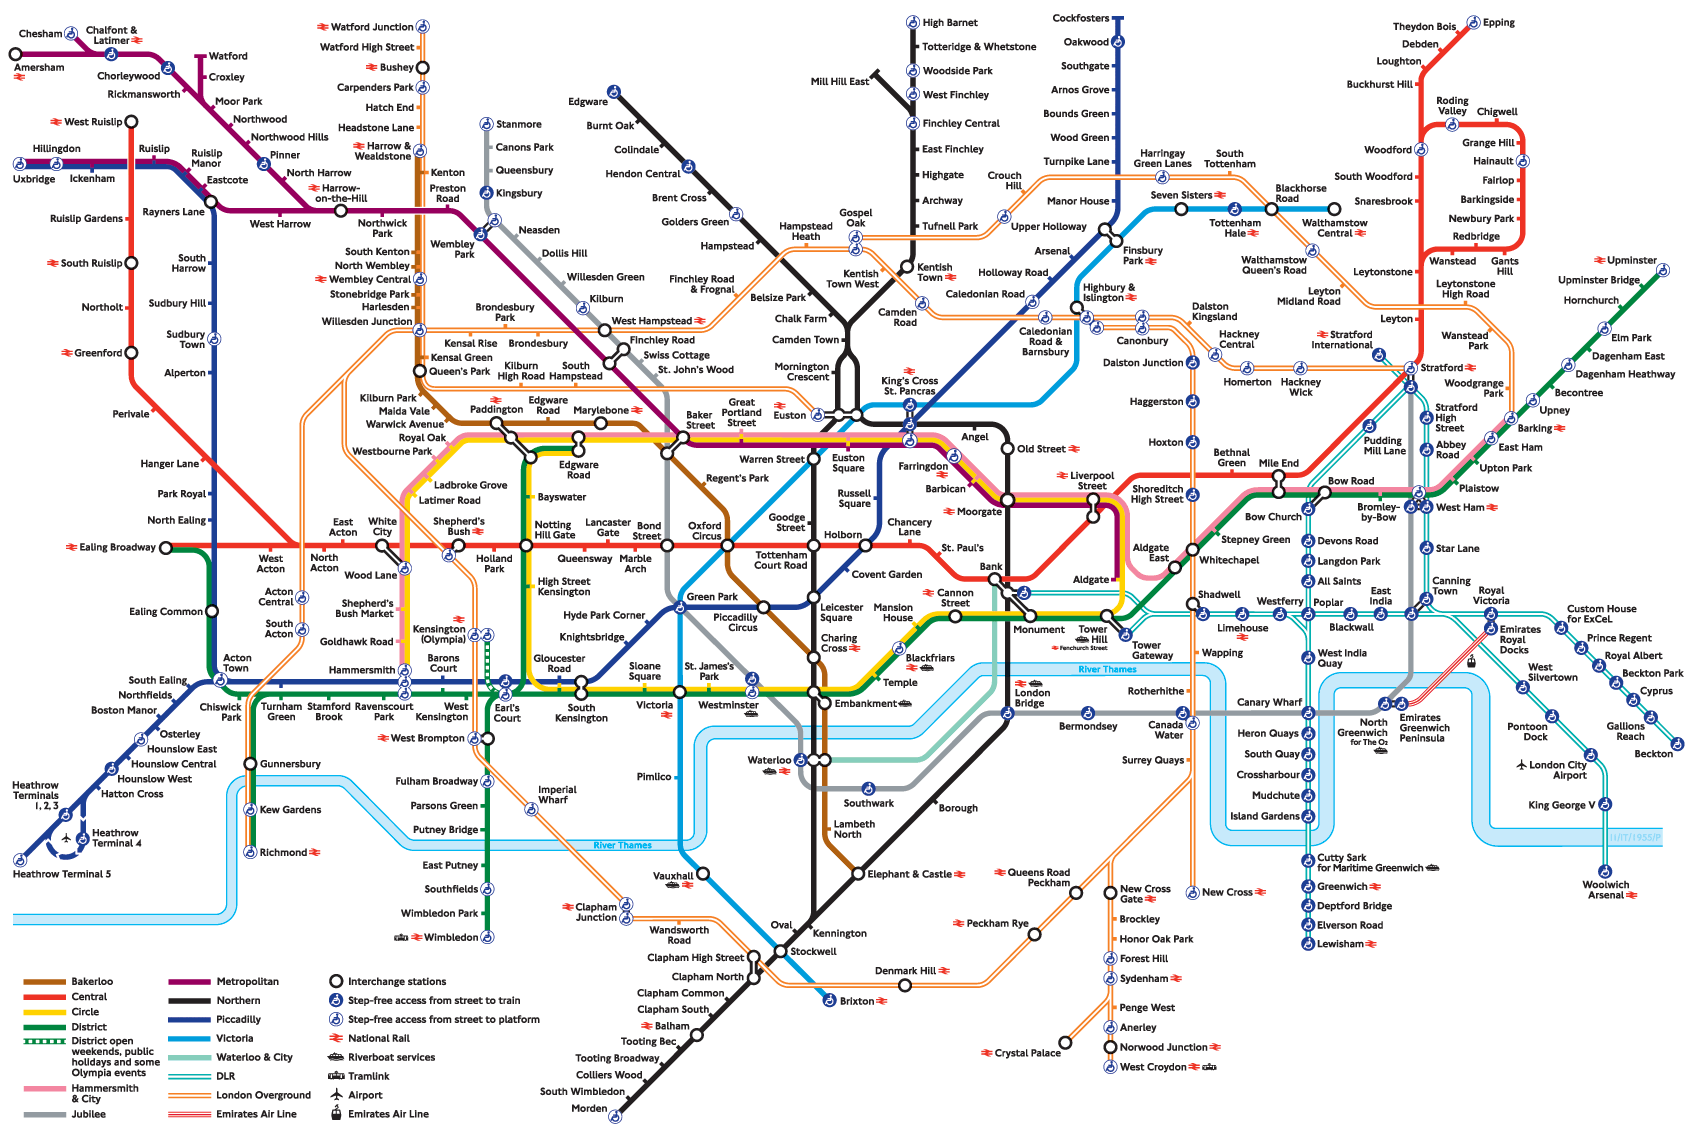 Tube Map Journey Planner GitHub   jpatel531/journey_planner: A Ruby gem wrapper for the TFL  Tube Map Journey Planner